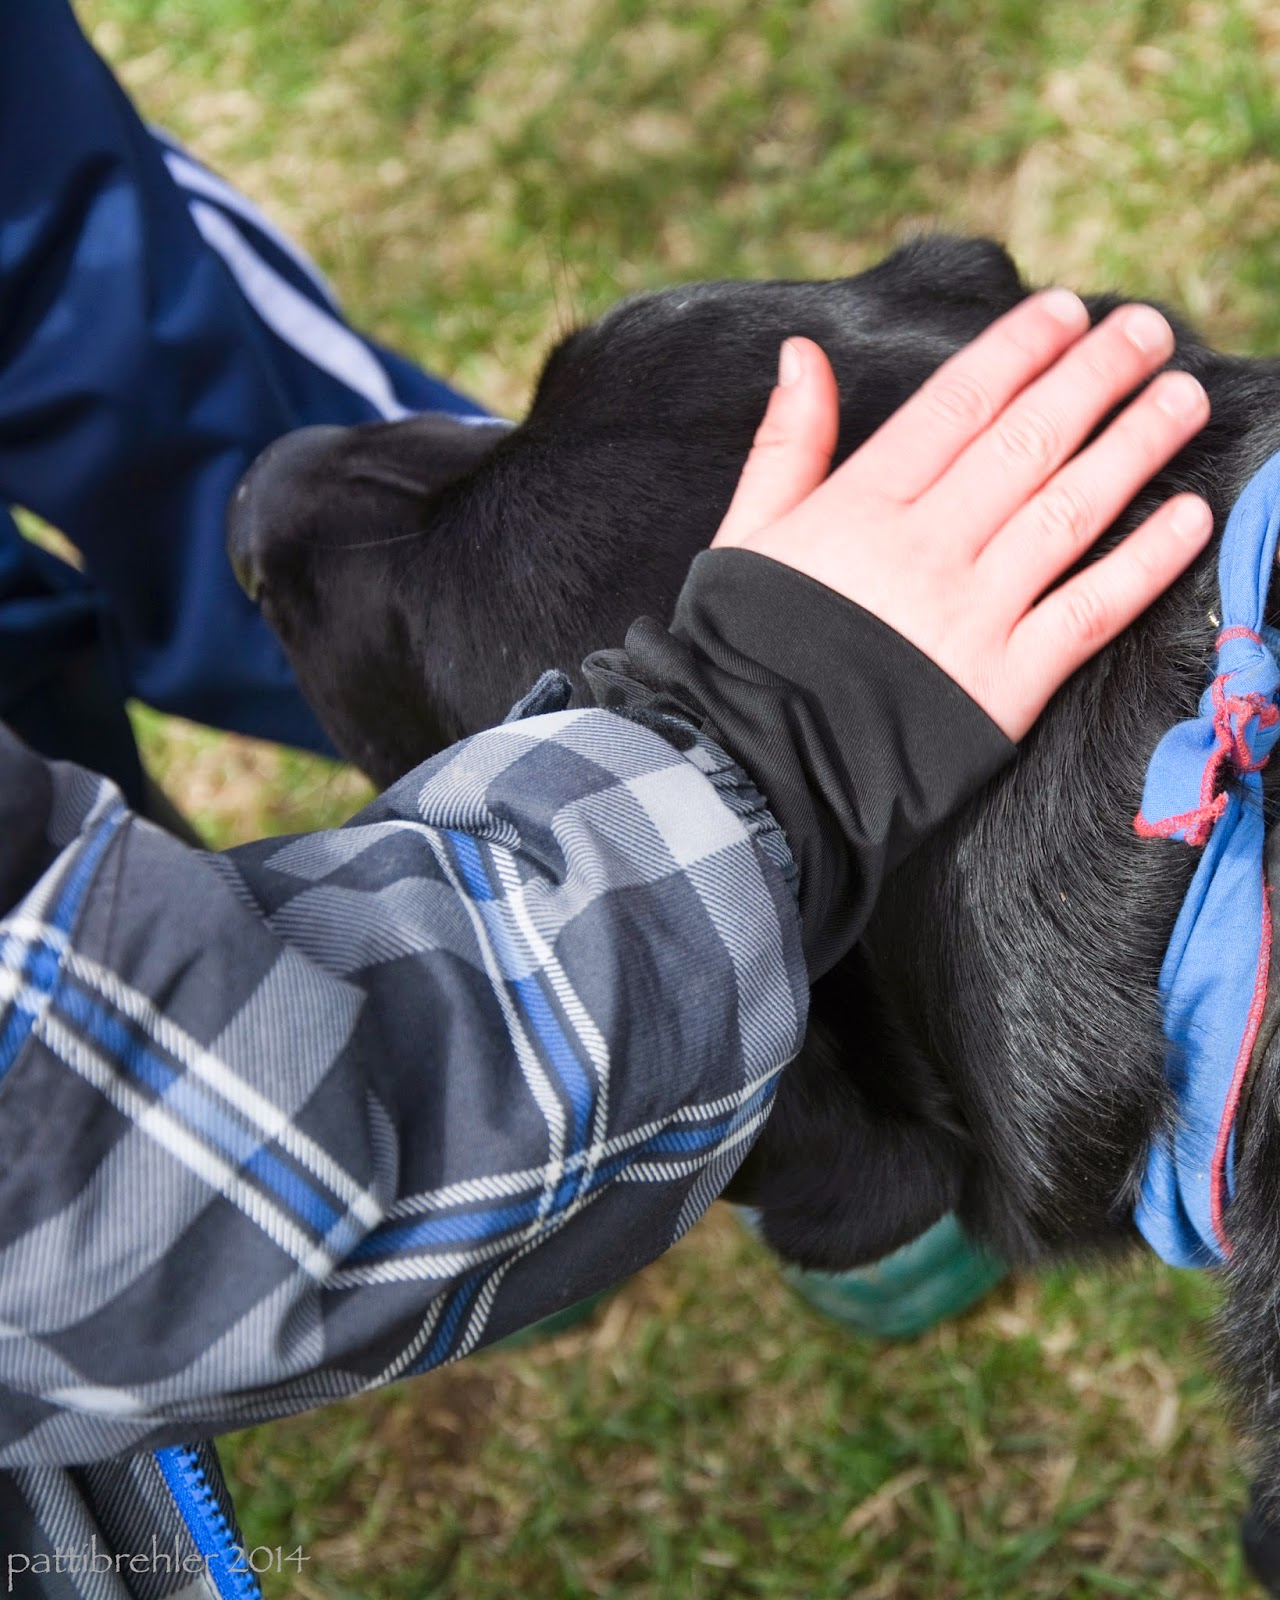 A child's hand pets the head of a black lab. The child is wearing a blue and grey plaid jackent. The arm of another chold is just visible in the background, wearing a navy blue with a white strip jacket.